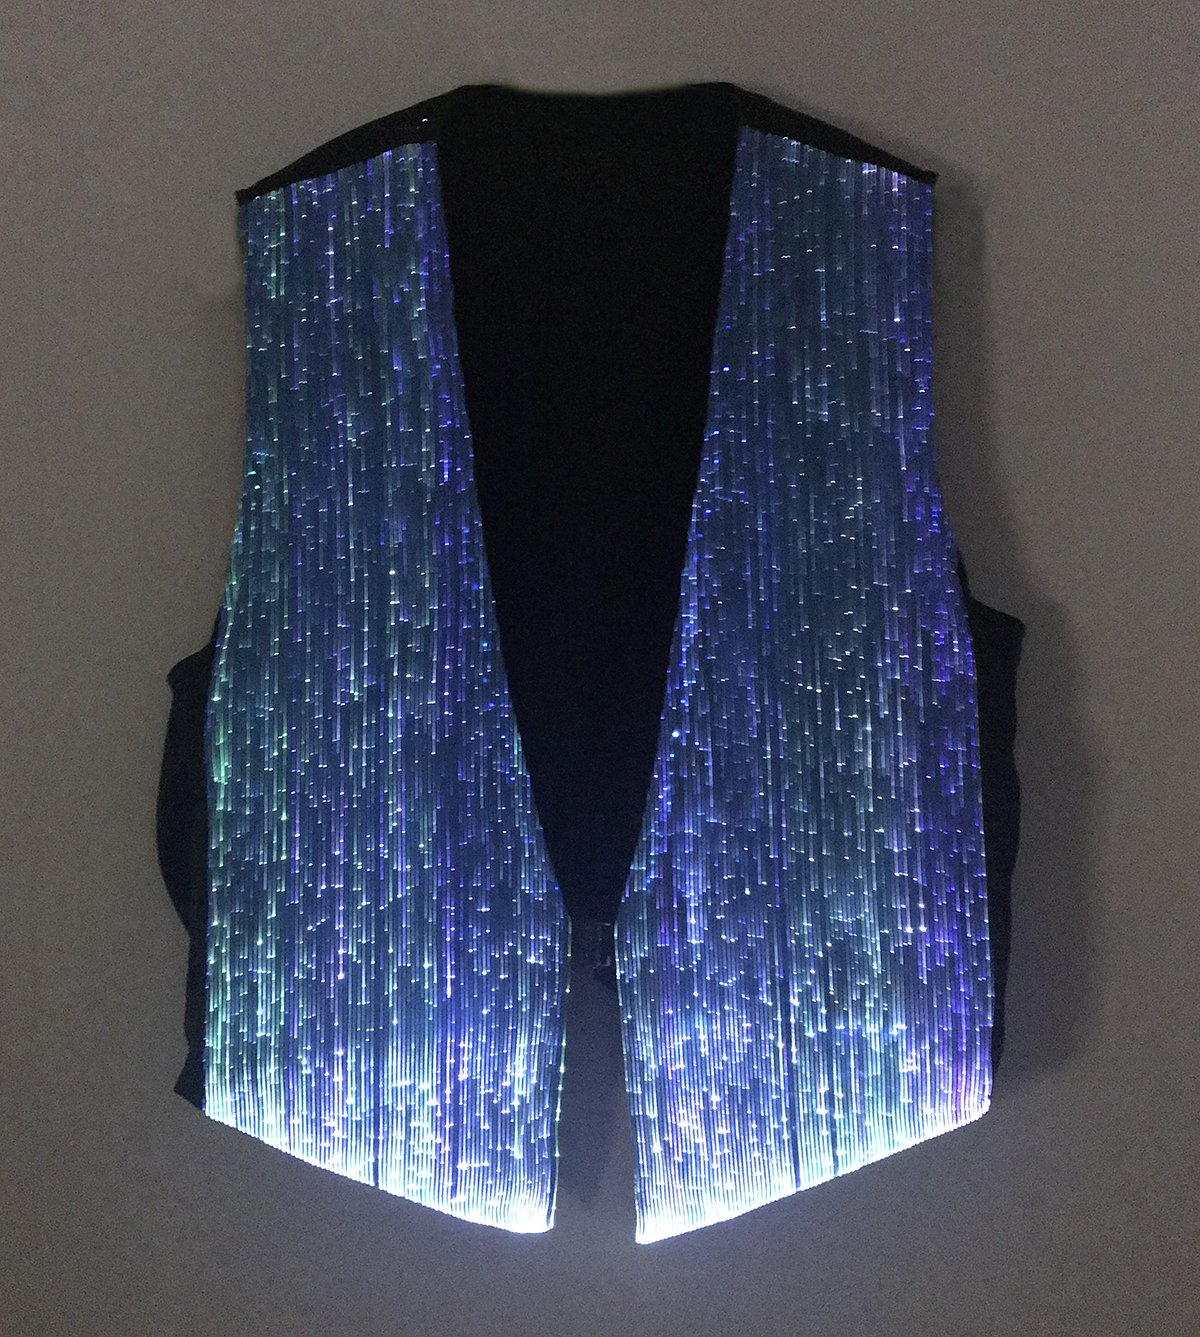 LED Fiber Optic Waistcoat Light up Vest for Men Fashion Glow in The Dark Luminous Vest (XL, Blue) by Fiber Optic Fabric Clothing (Image #3)